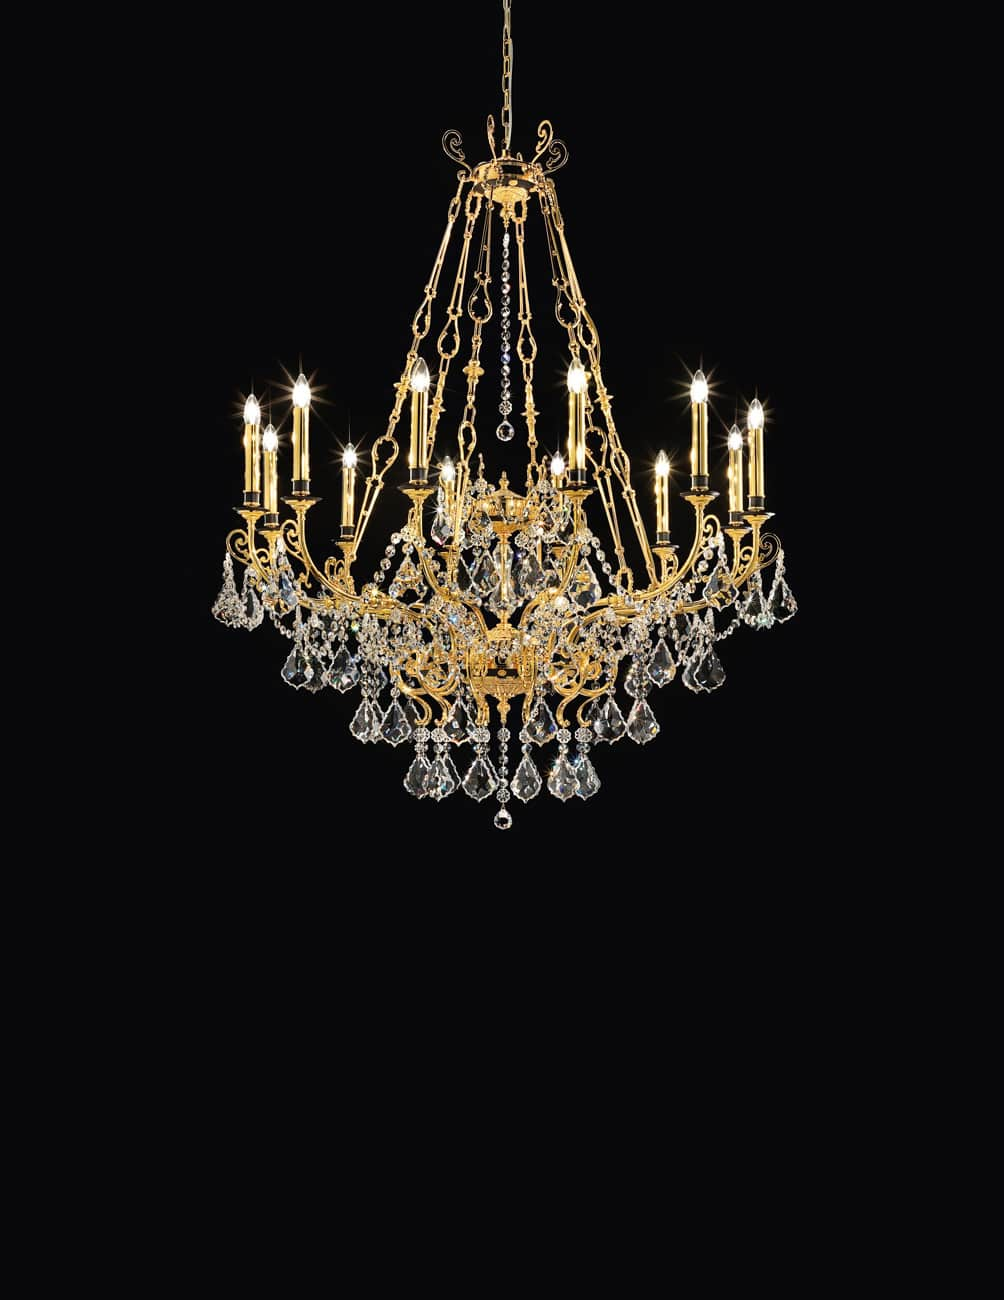 decorative lighting chandeliers 62